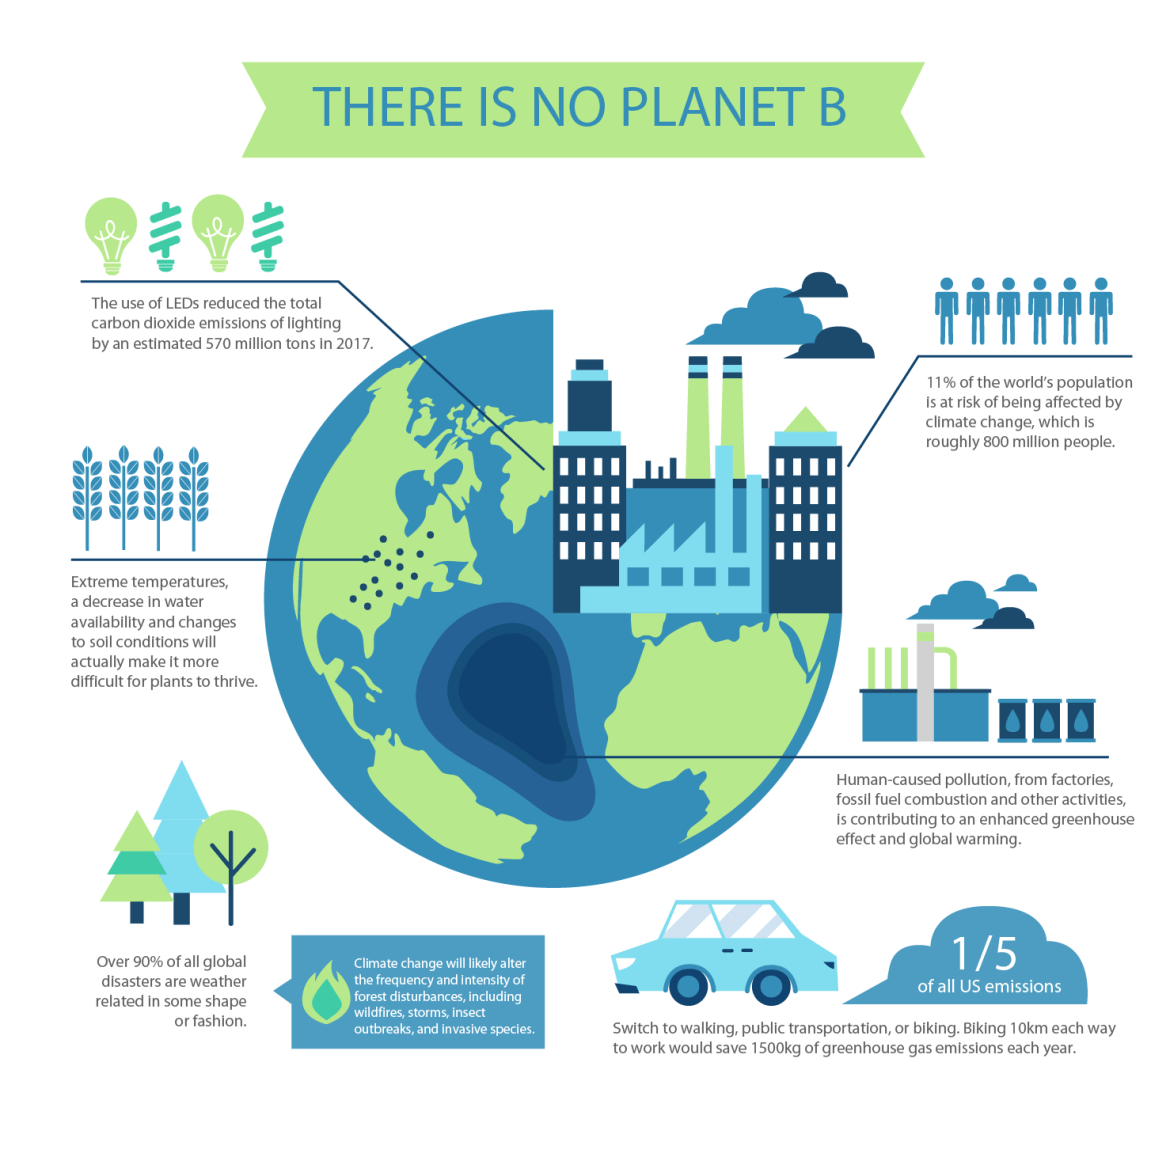 Illustration with information about climate change